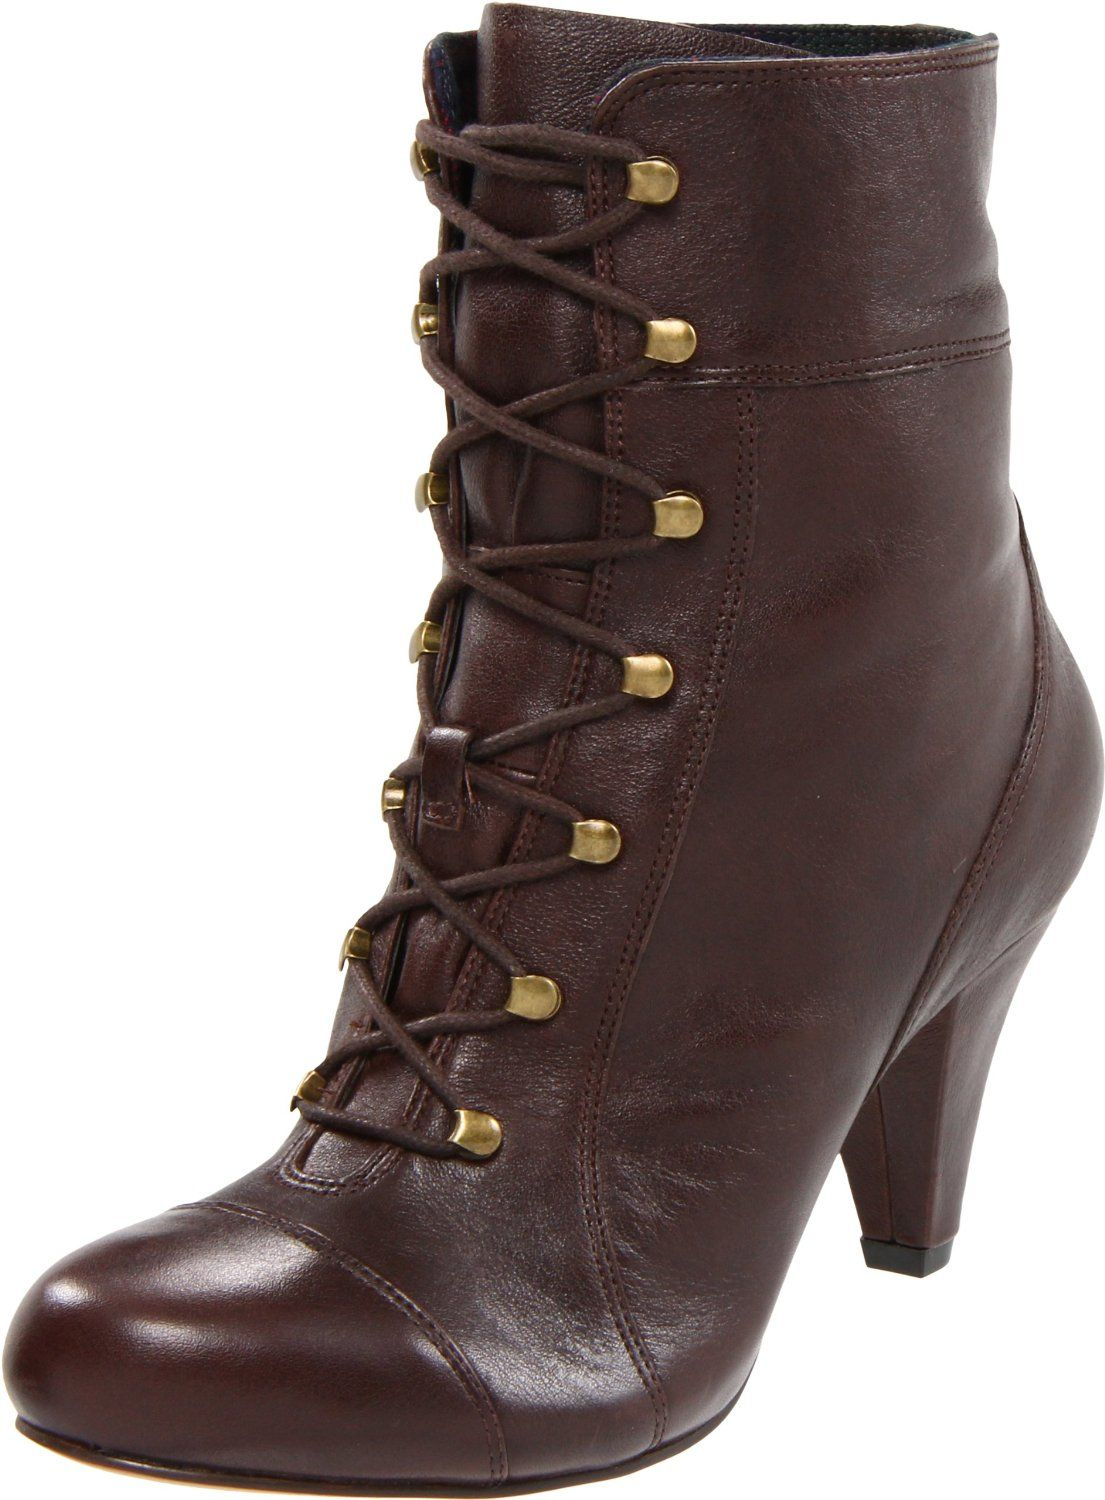 granny boots were very popular in the 90s . My first pair of shoes my  mother bought my sisters and I ~ besides school shoes~ were HEELS!!! a233999d2